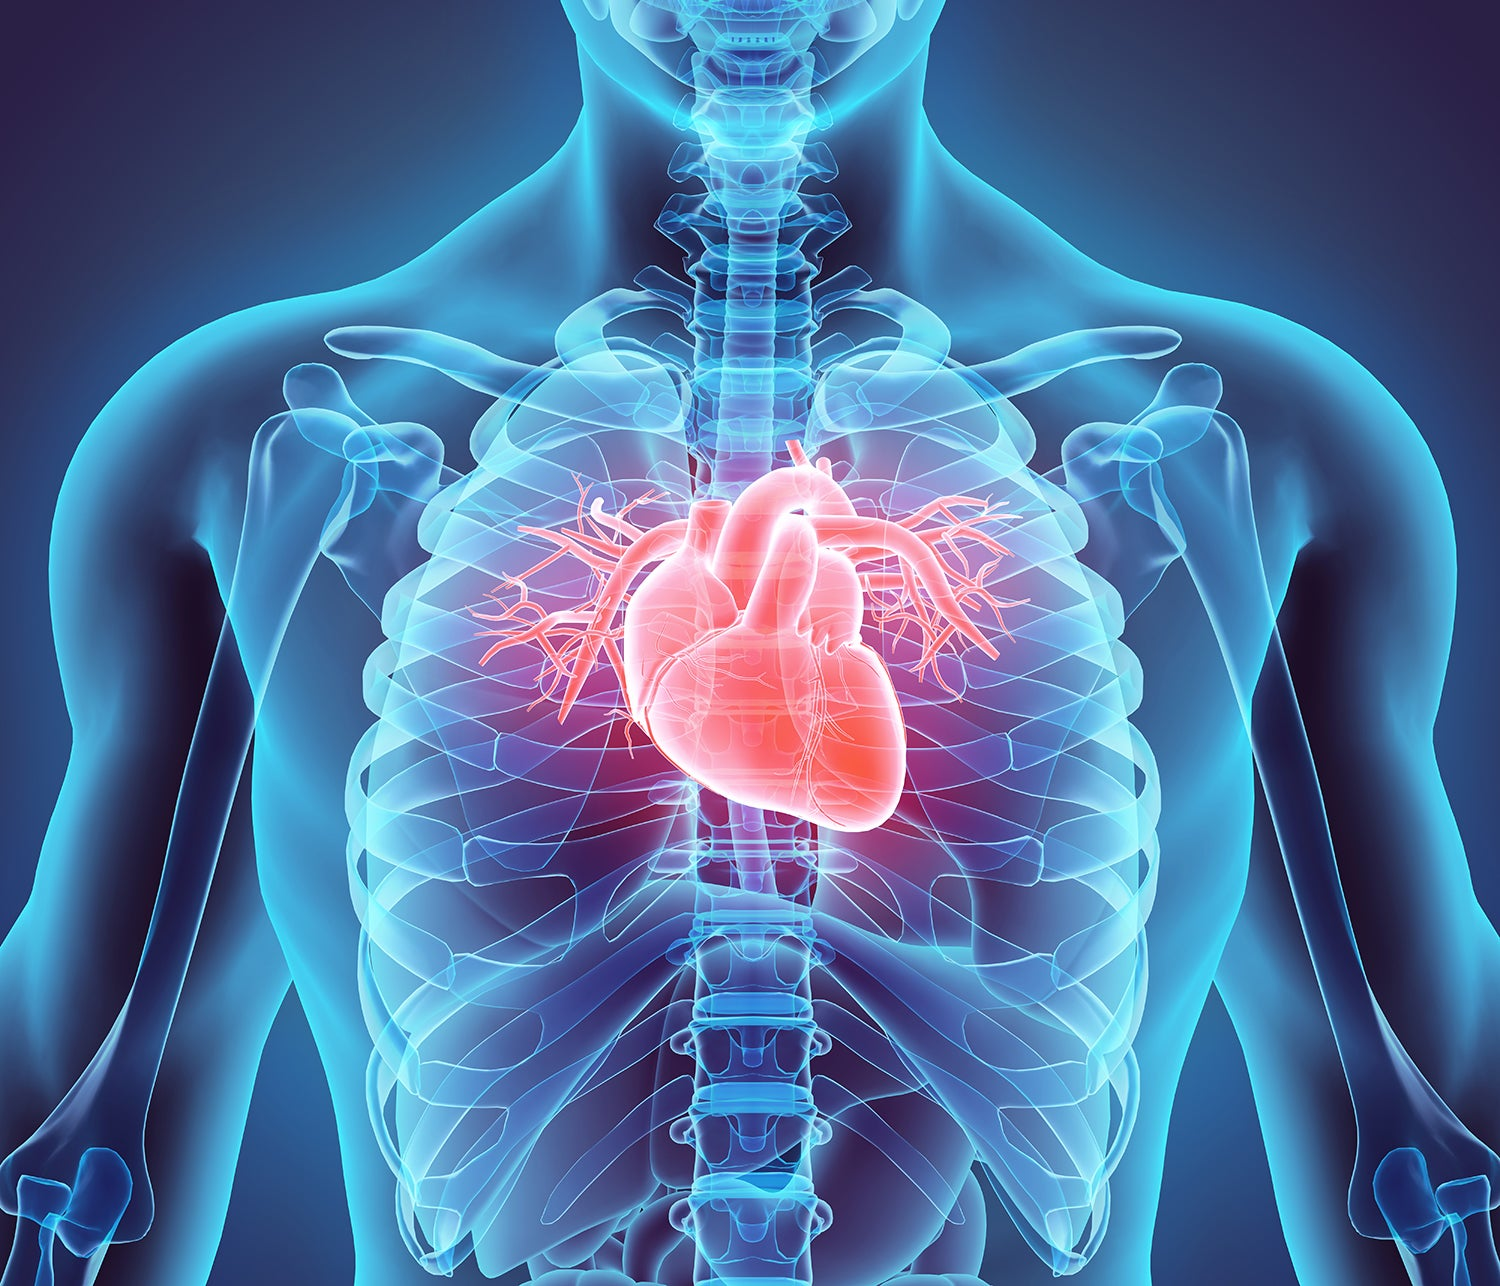 Covid-19 pandemic 'leads to slump in heart disease tests'